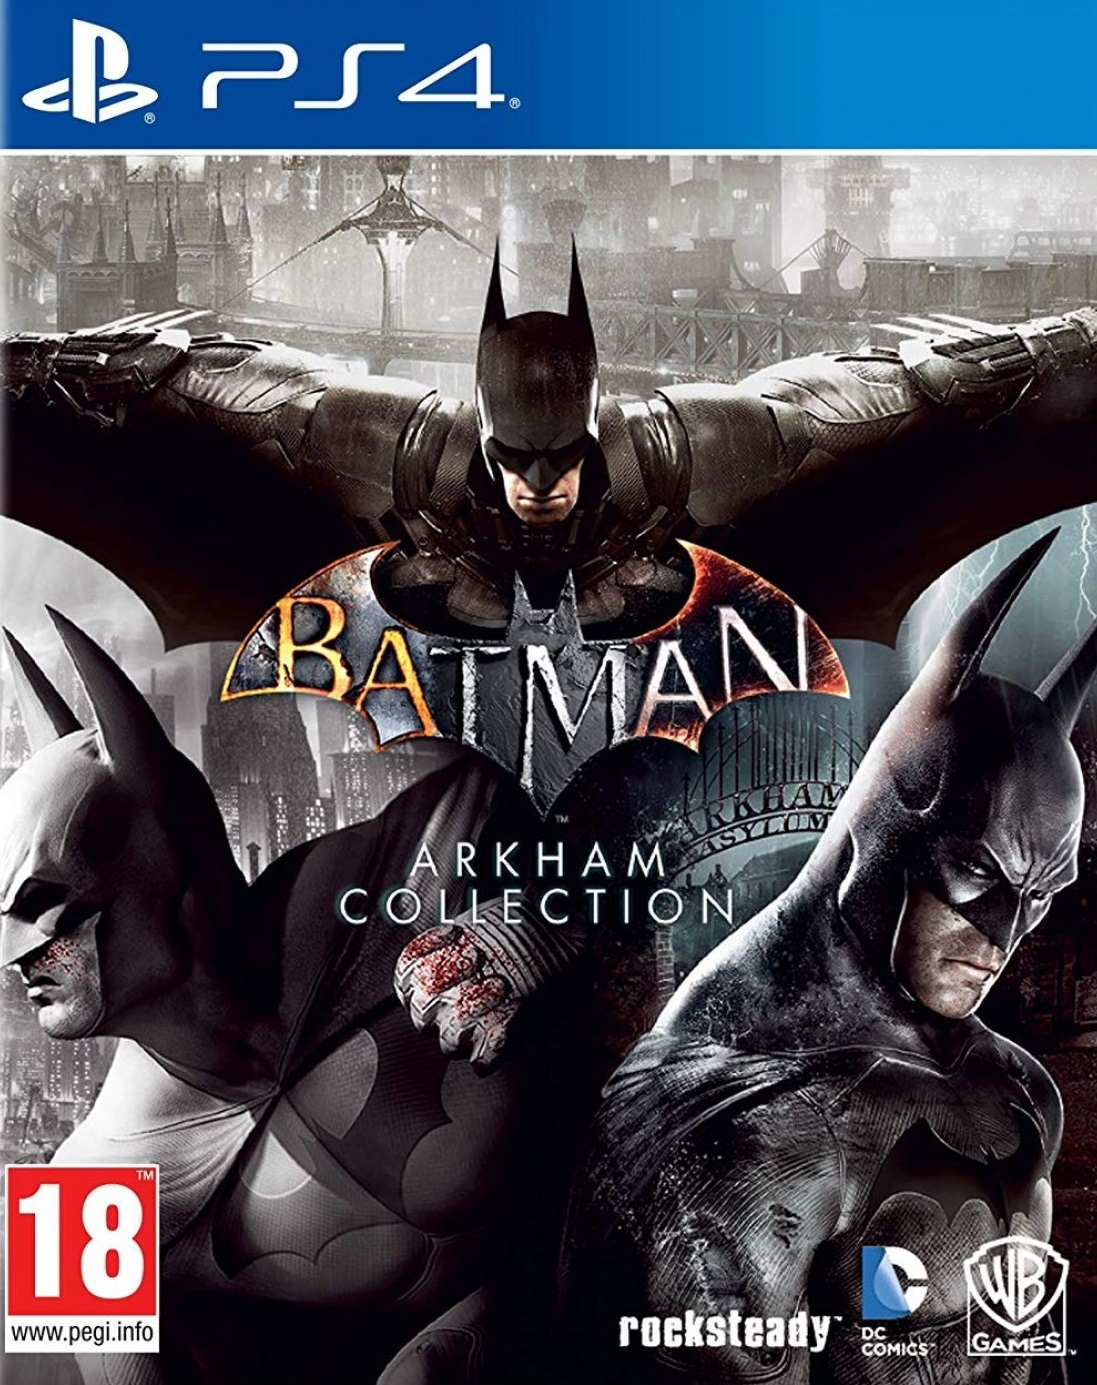 Batman Arkham Collection Edition for PS4 image